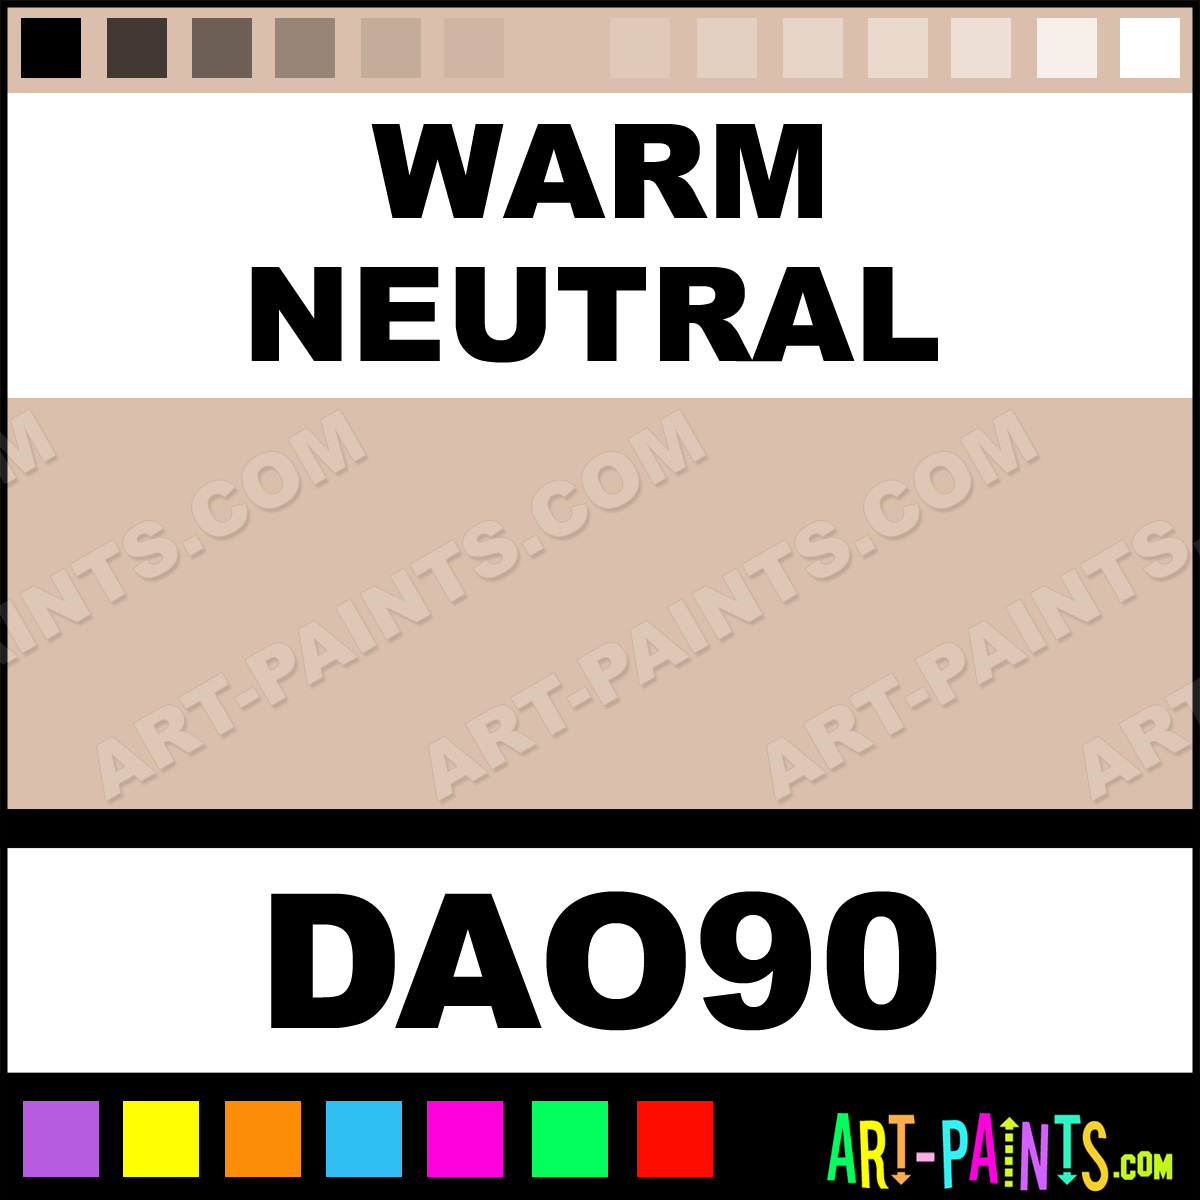 Warm neutral decoart acrylic paints dao90 warm neutral for Warm neutral paint colors